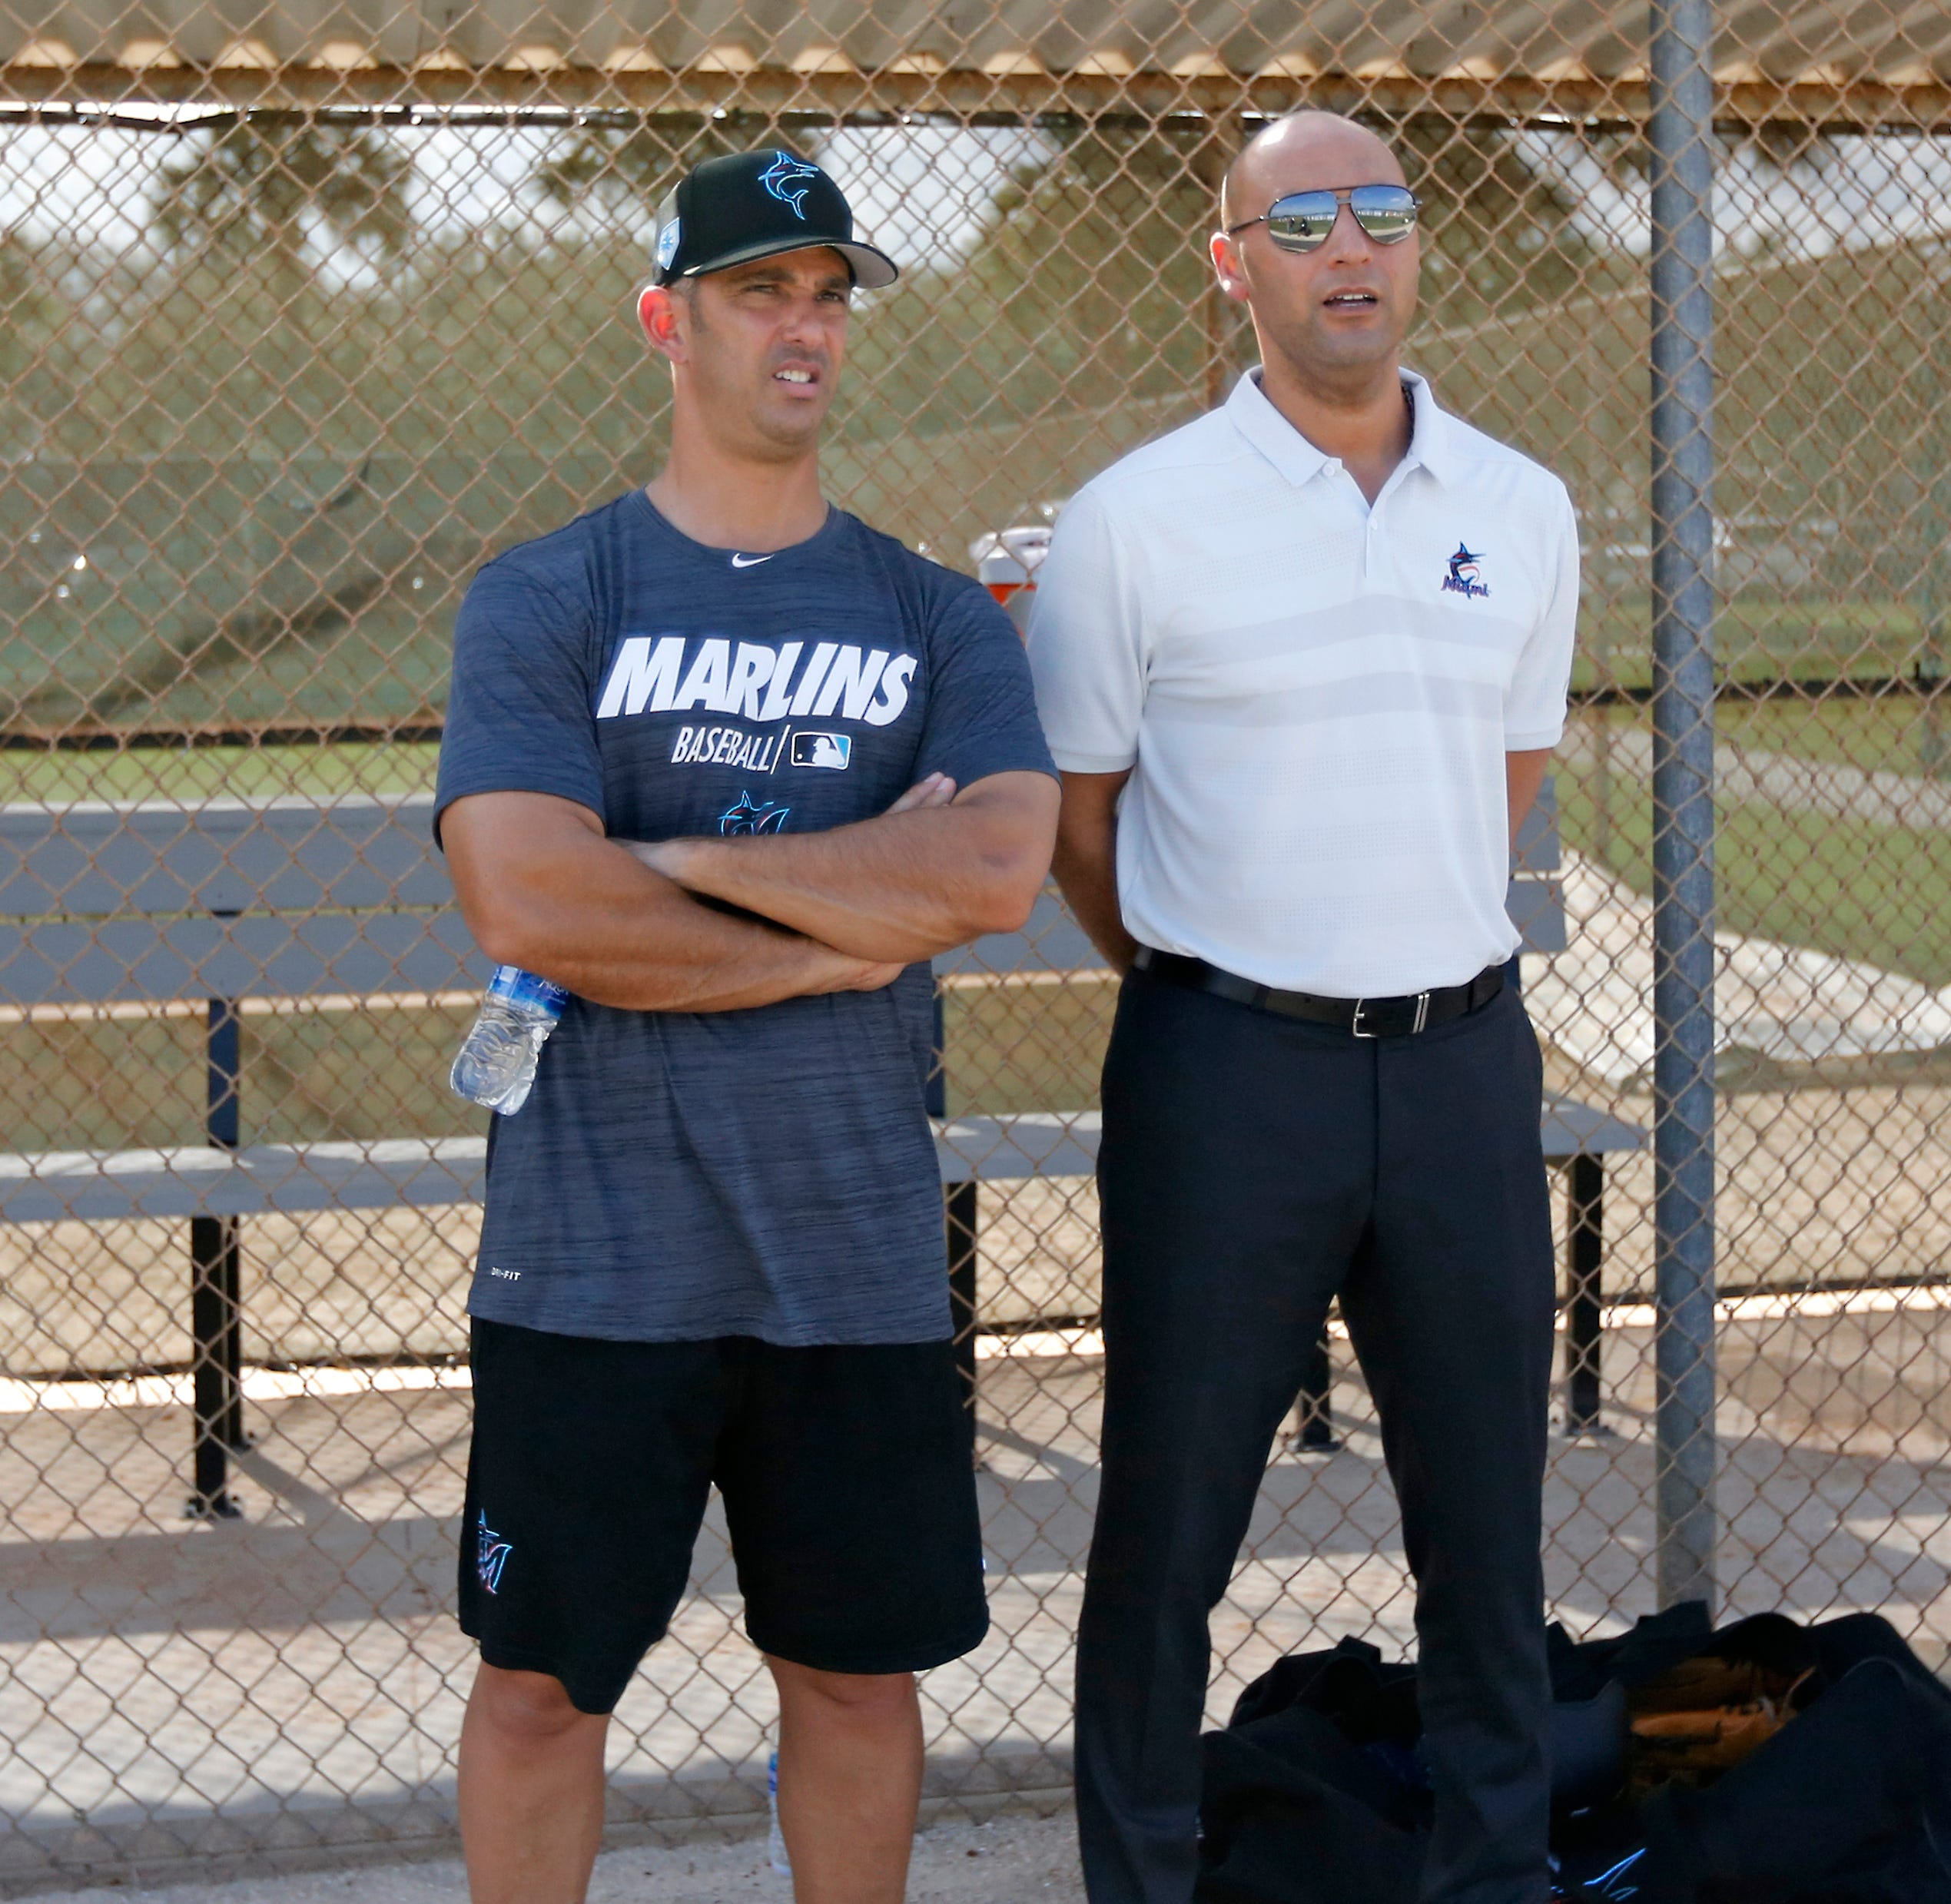 New York Yankees great Jorge Posada on joining Marlins: 'Perfect timing'